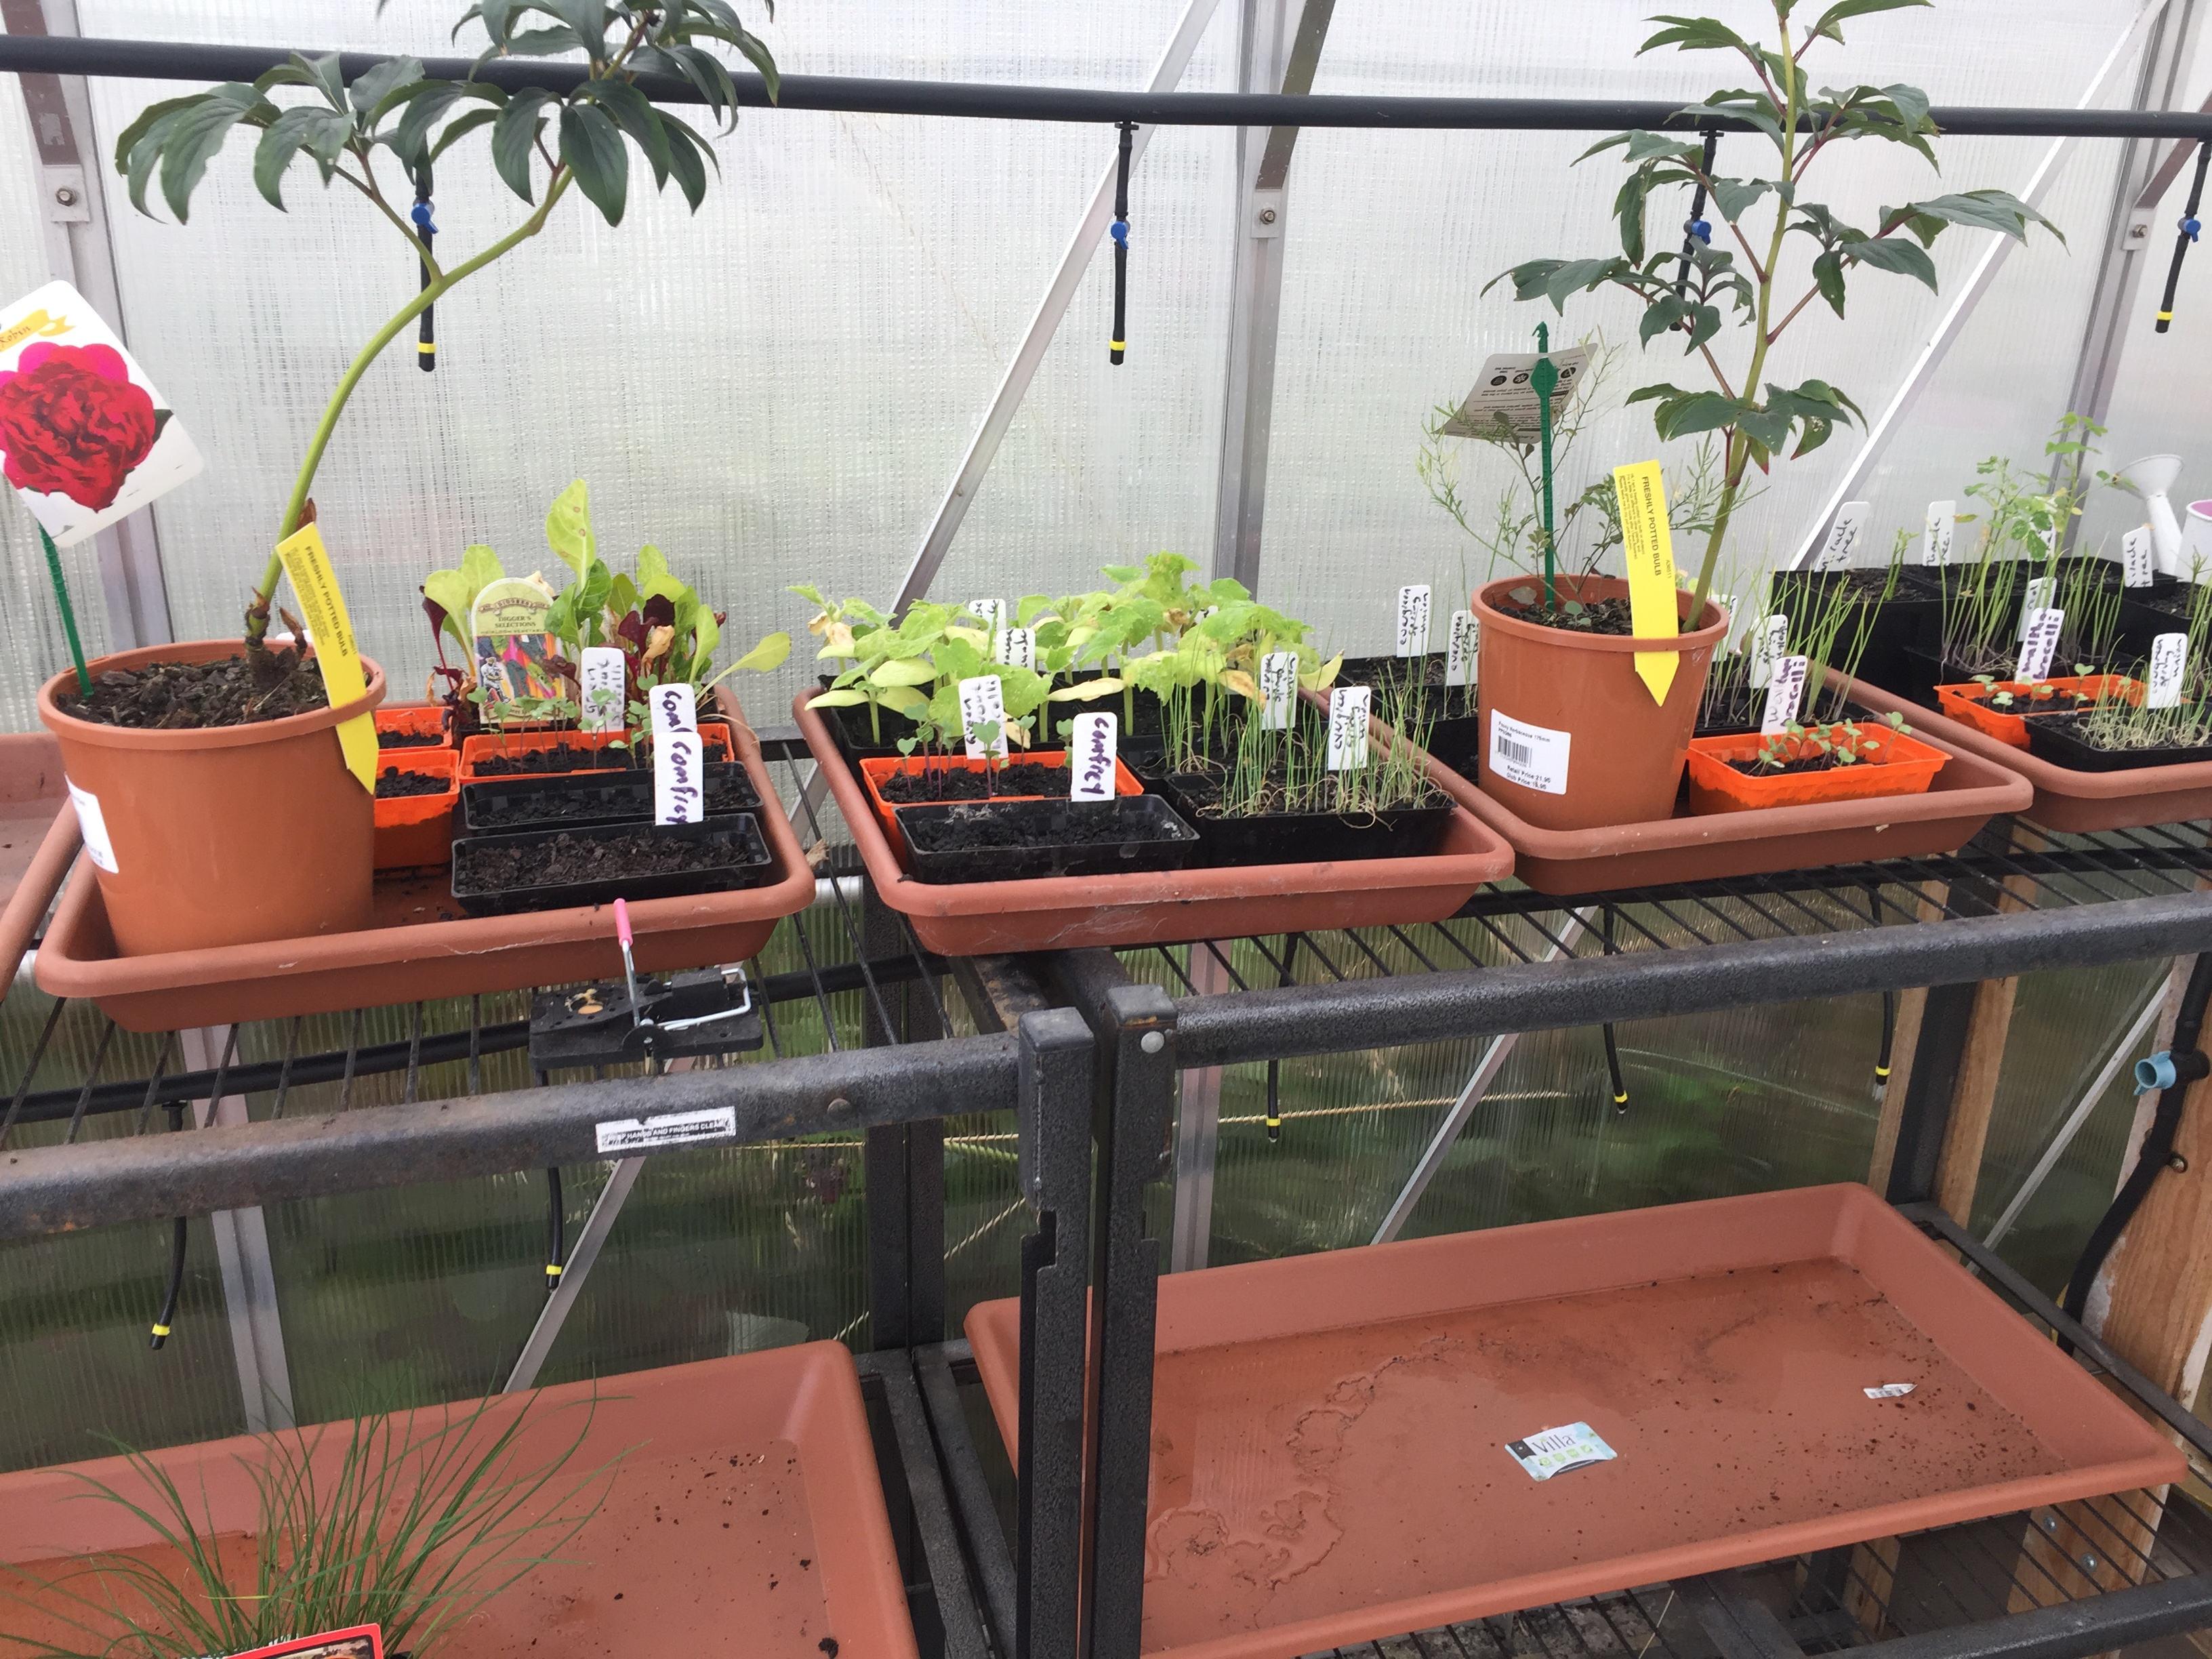 Greenhouse – seedlings